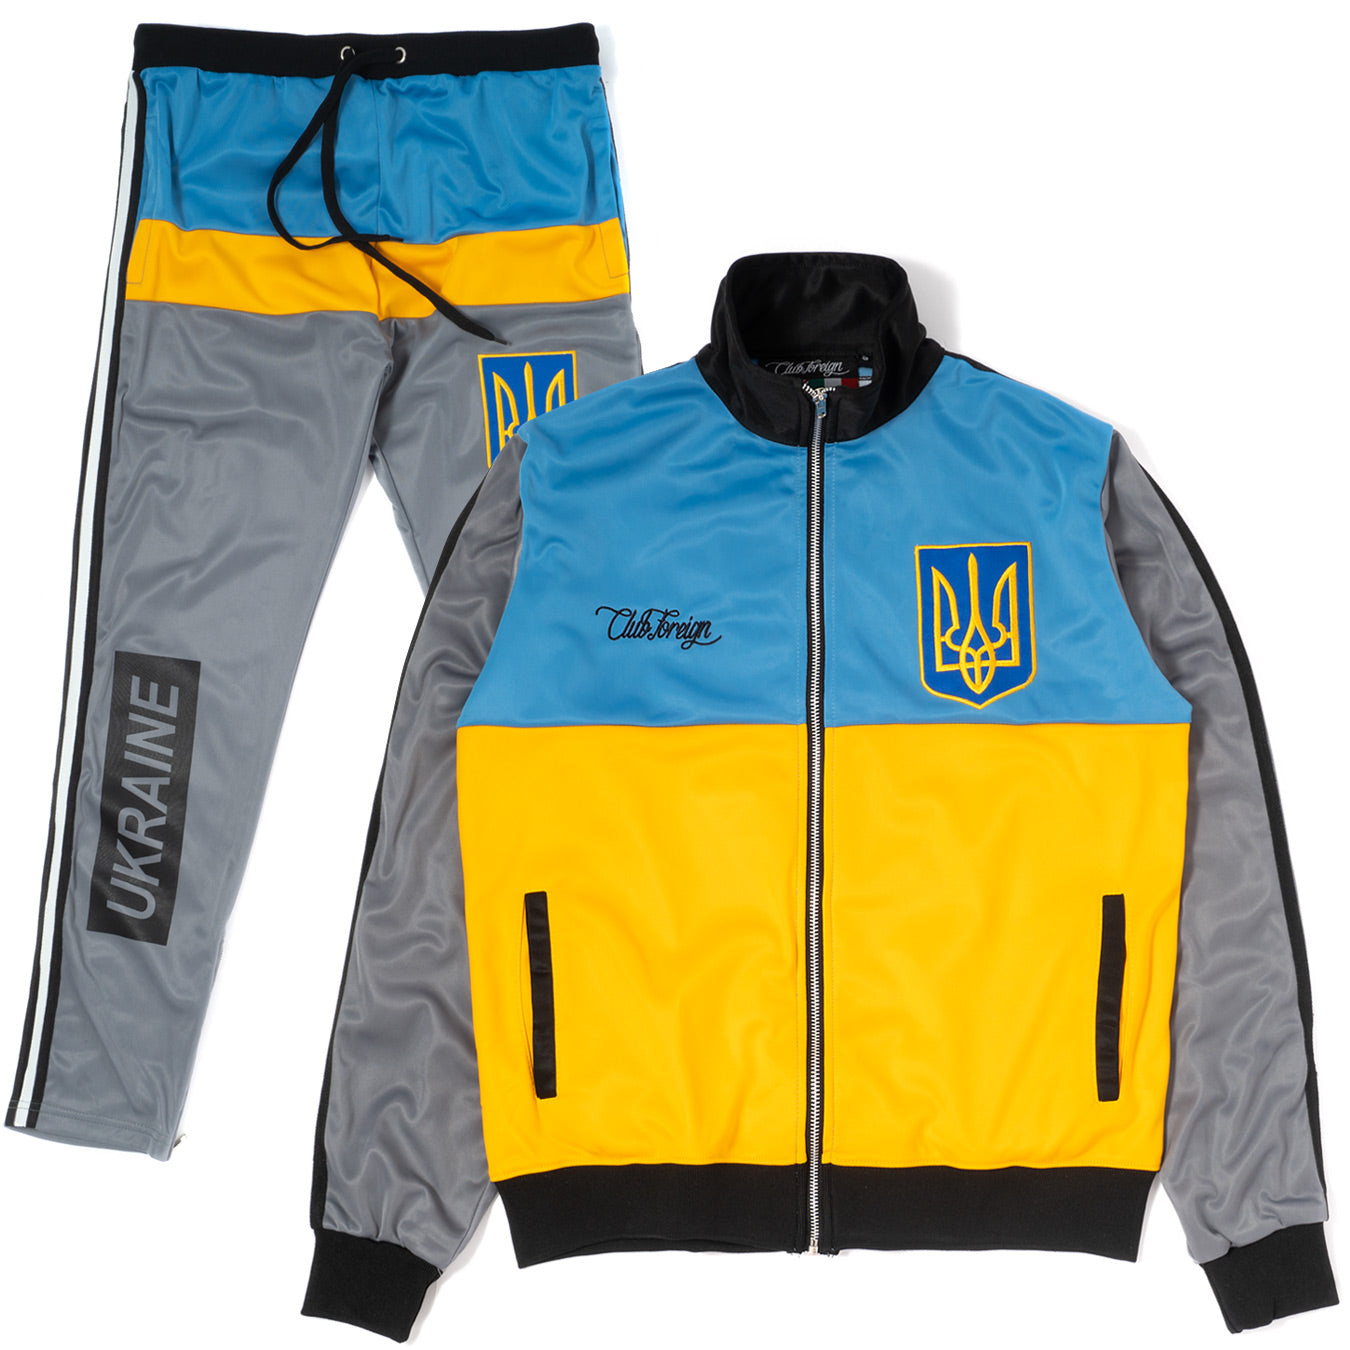 ClubForeign Tracksuit Ukraine Jacket and Jogger Pants TRB